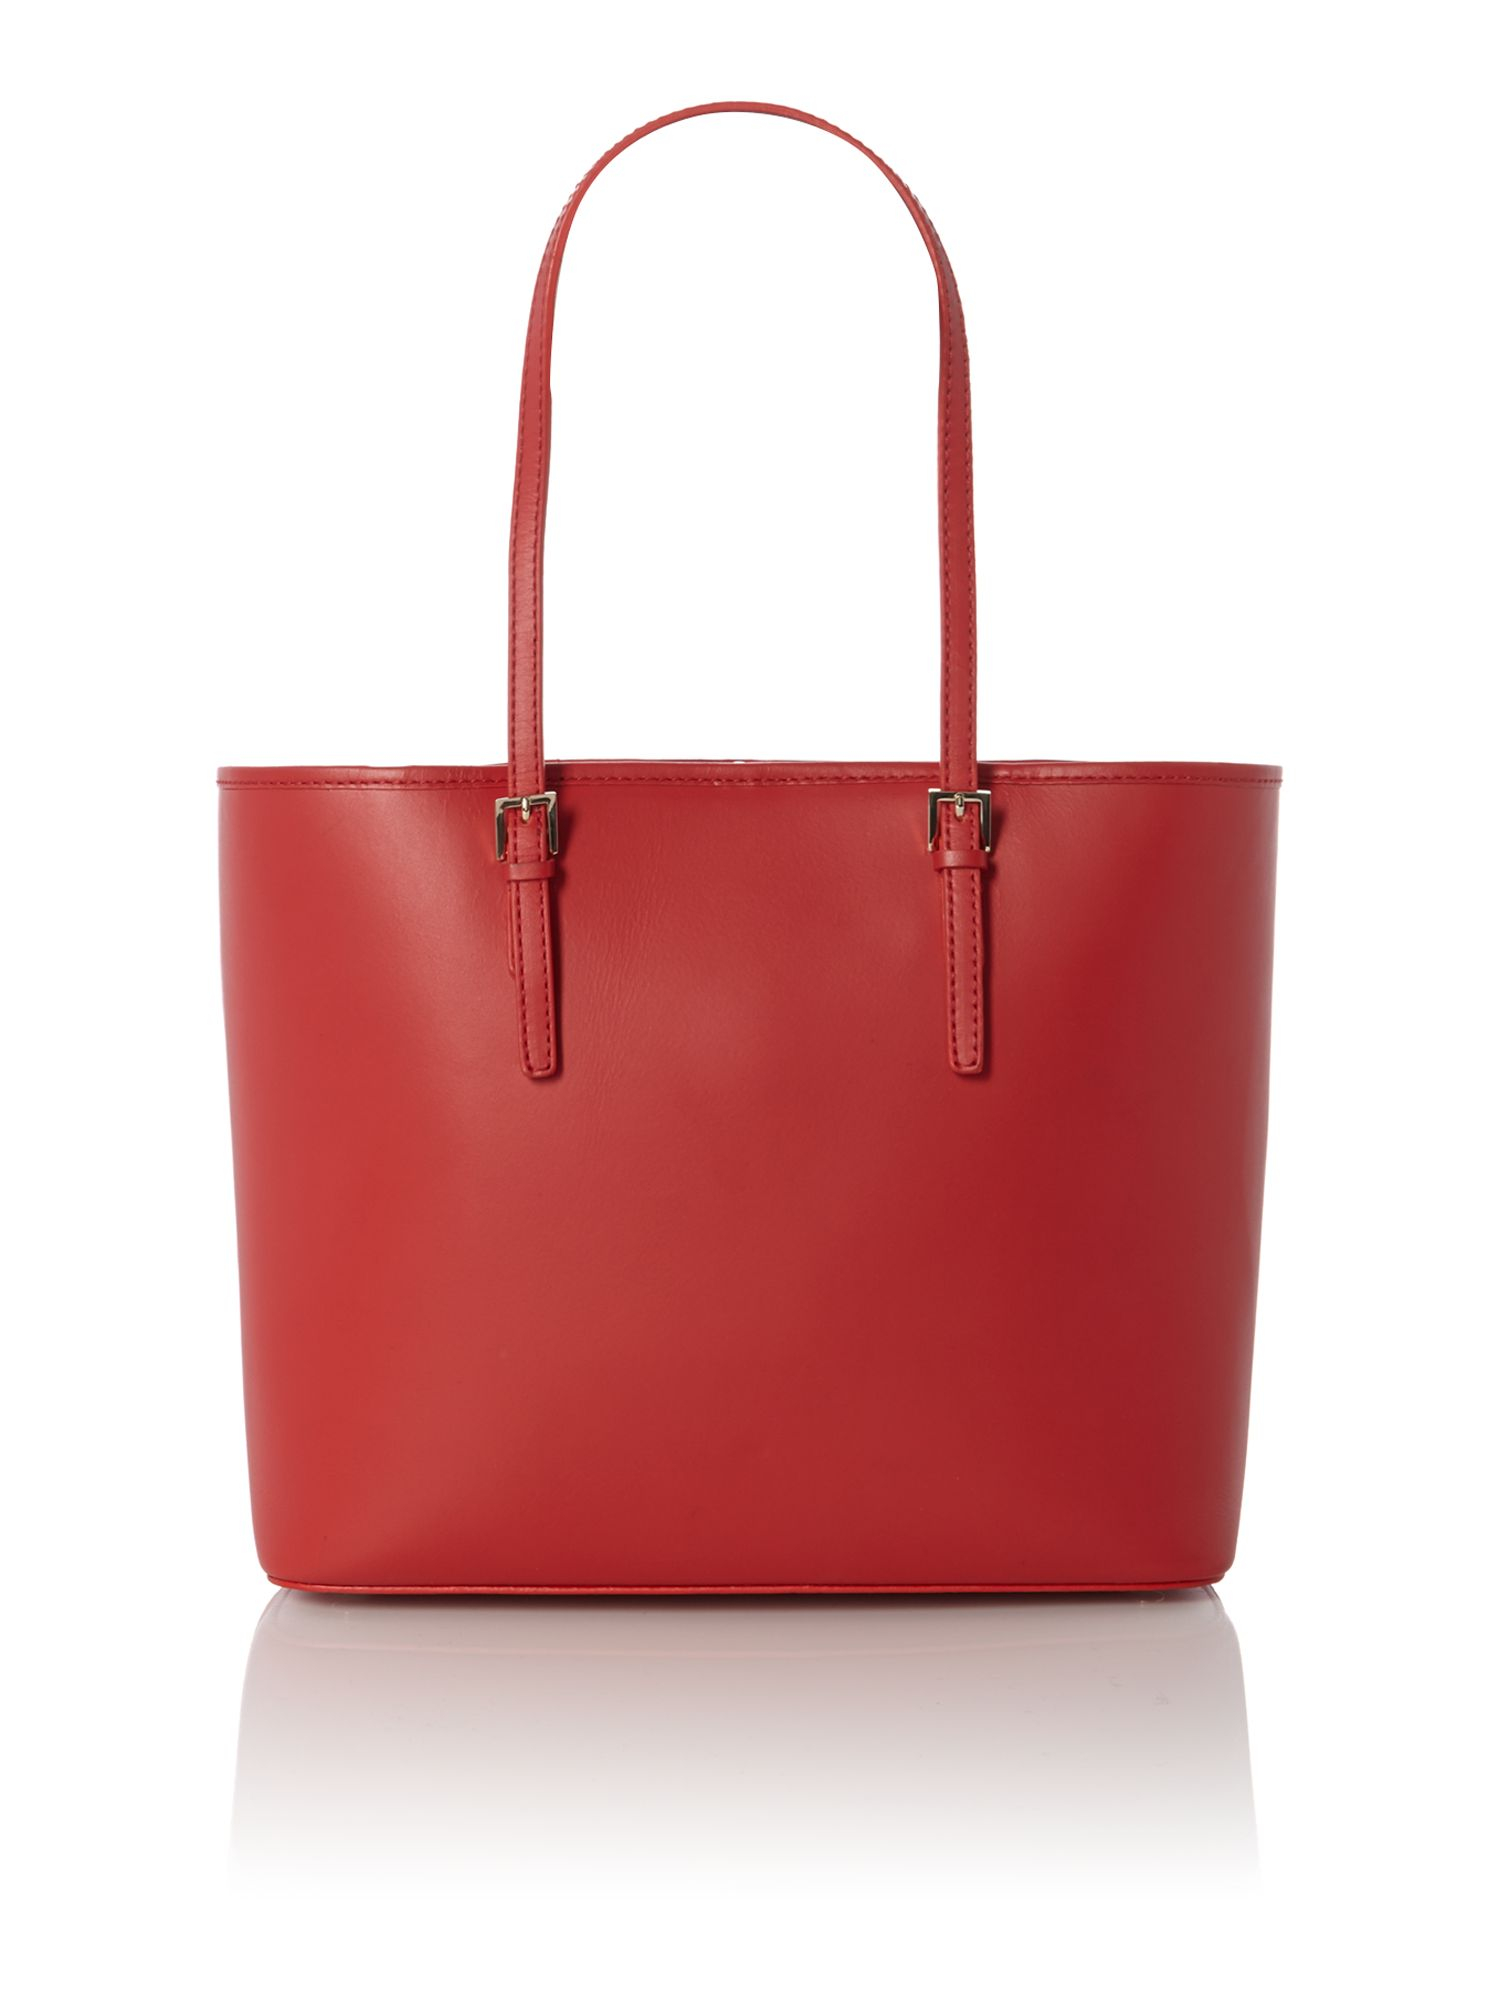 Christian Lacroix Absolut Red Cut Out Tote Bag